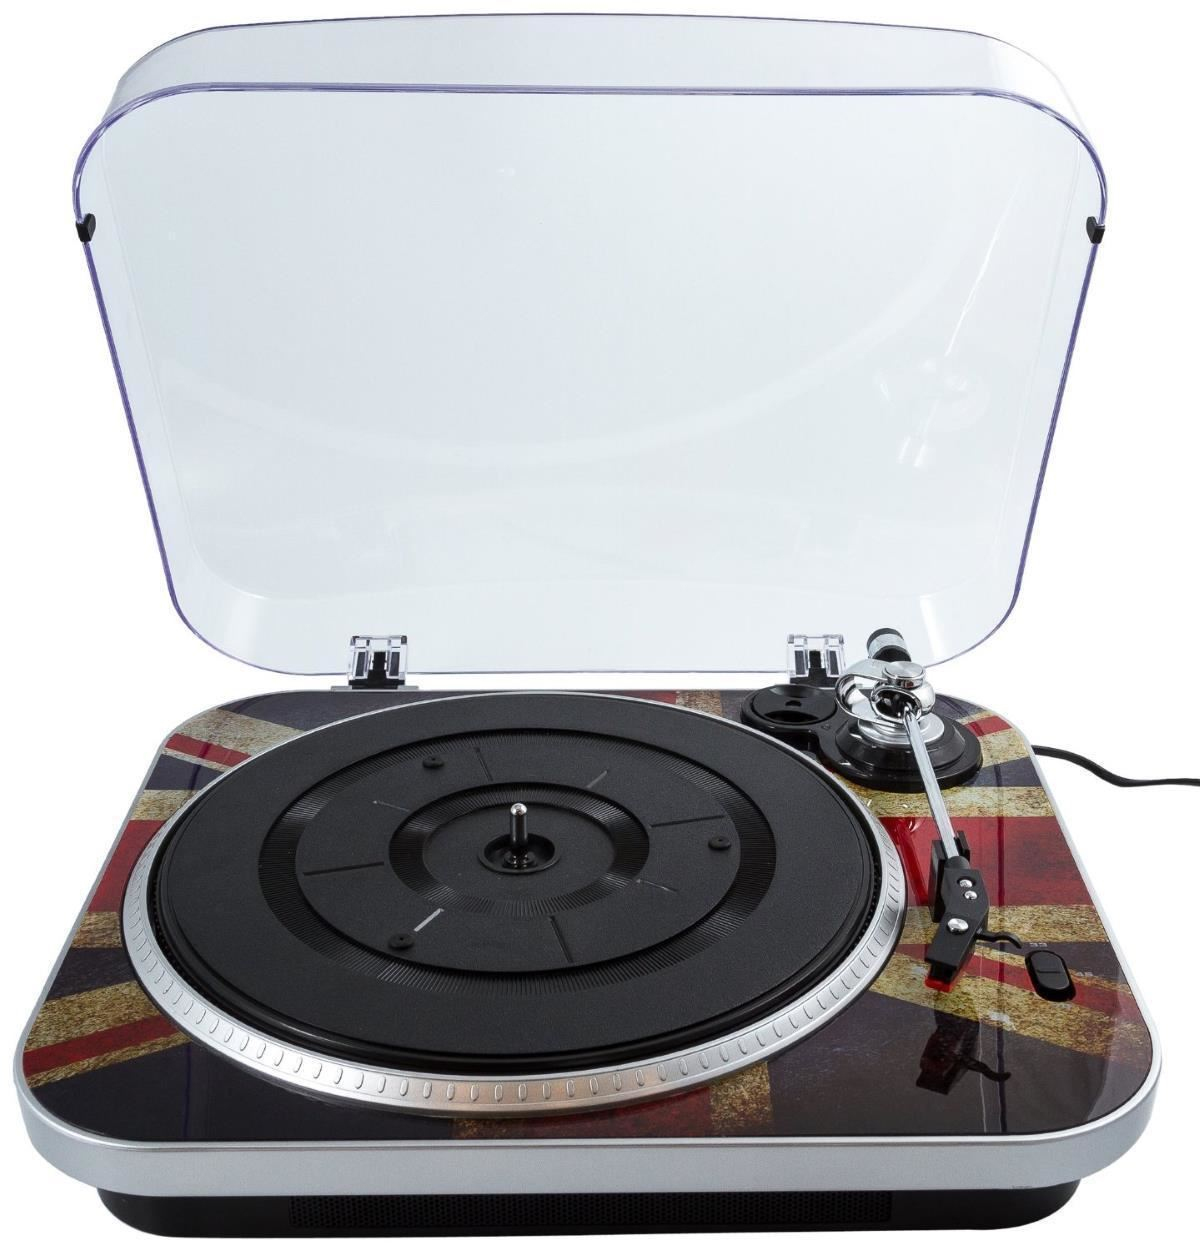 Gpo Jam Union Jack Vinyl Turntable 3 Speed Usb Retro Stand